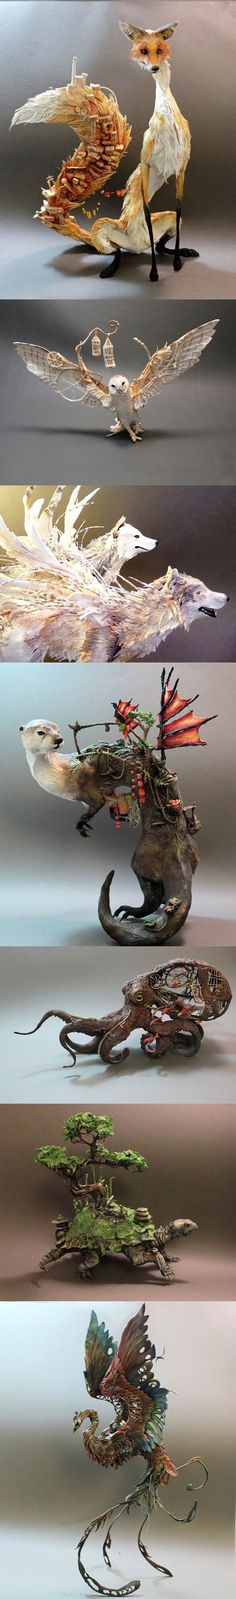 Ellen Jewett. She calls it Natural History Surrealist Sculpture. I call it amazing.